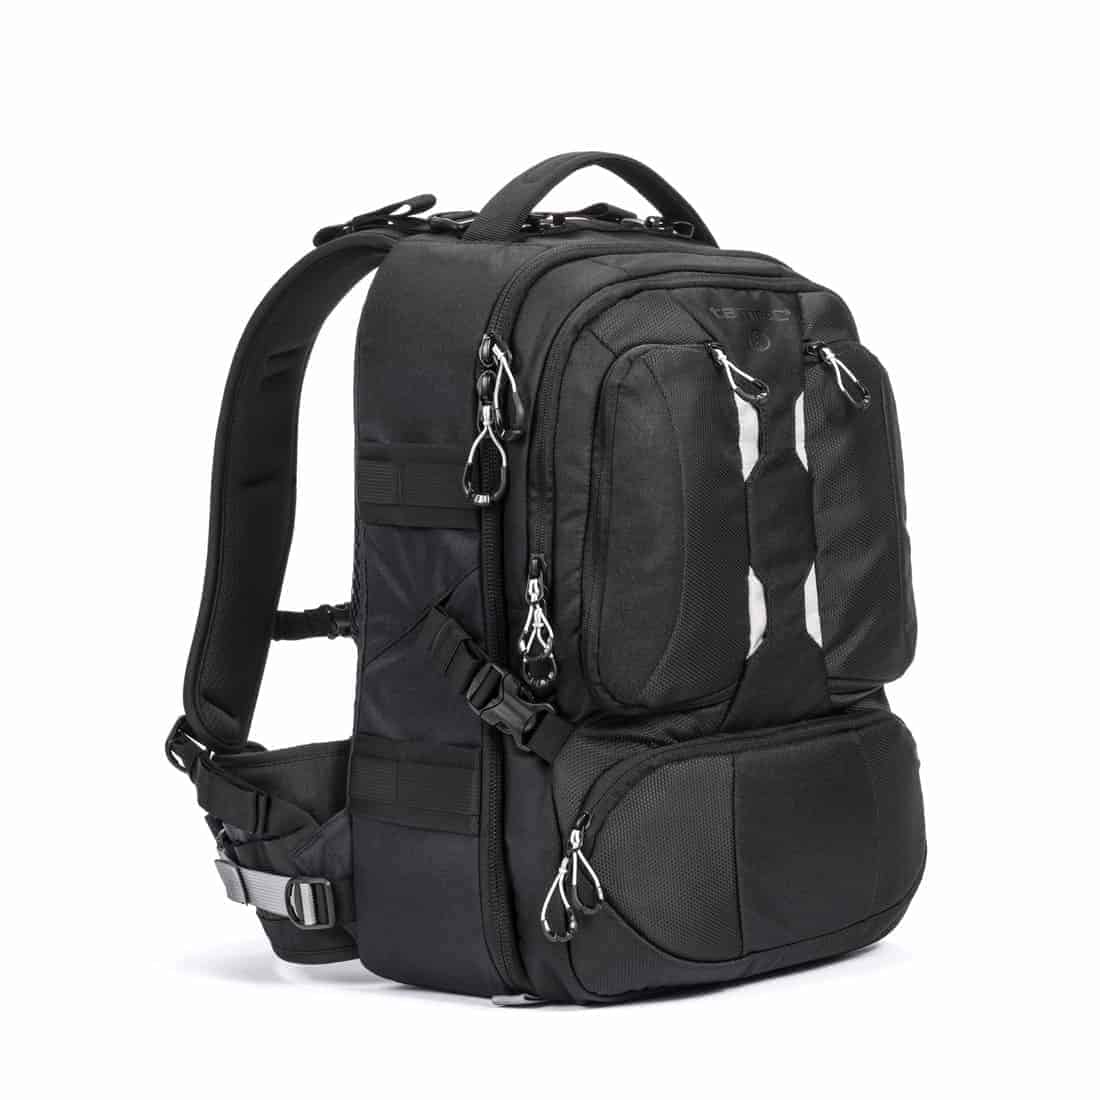 Lowepro Fastpack 250 Camera Laptop Backpack Fenix Toulouse Handball Streetline Sh 120